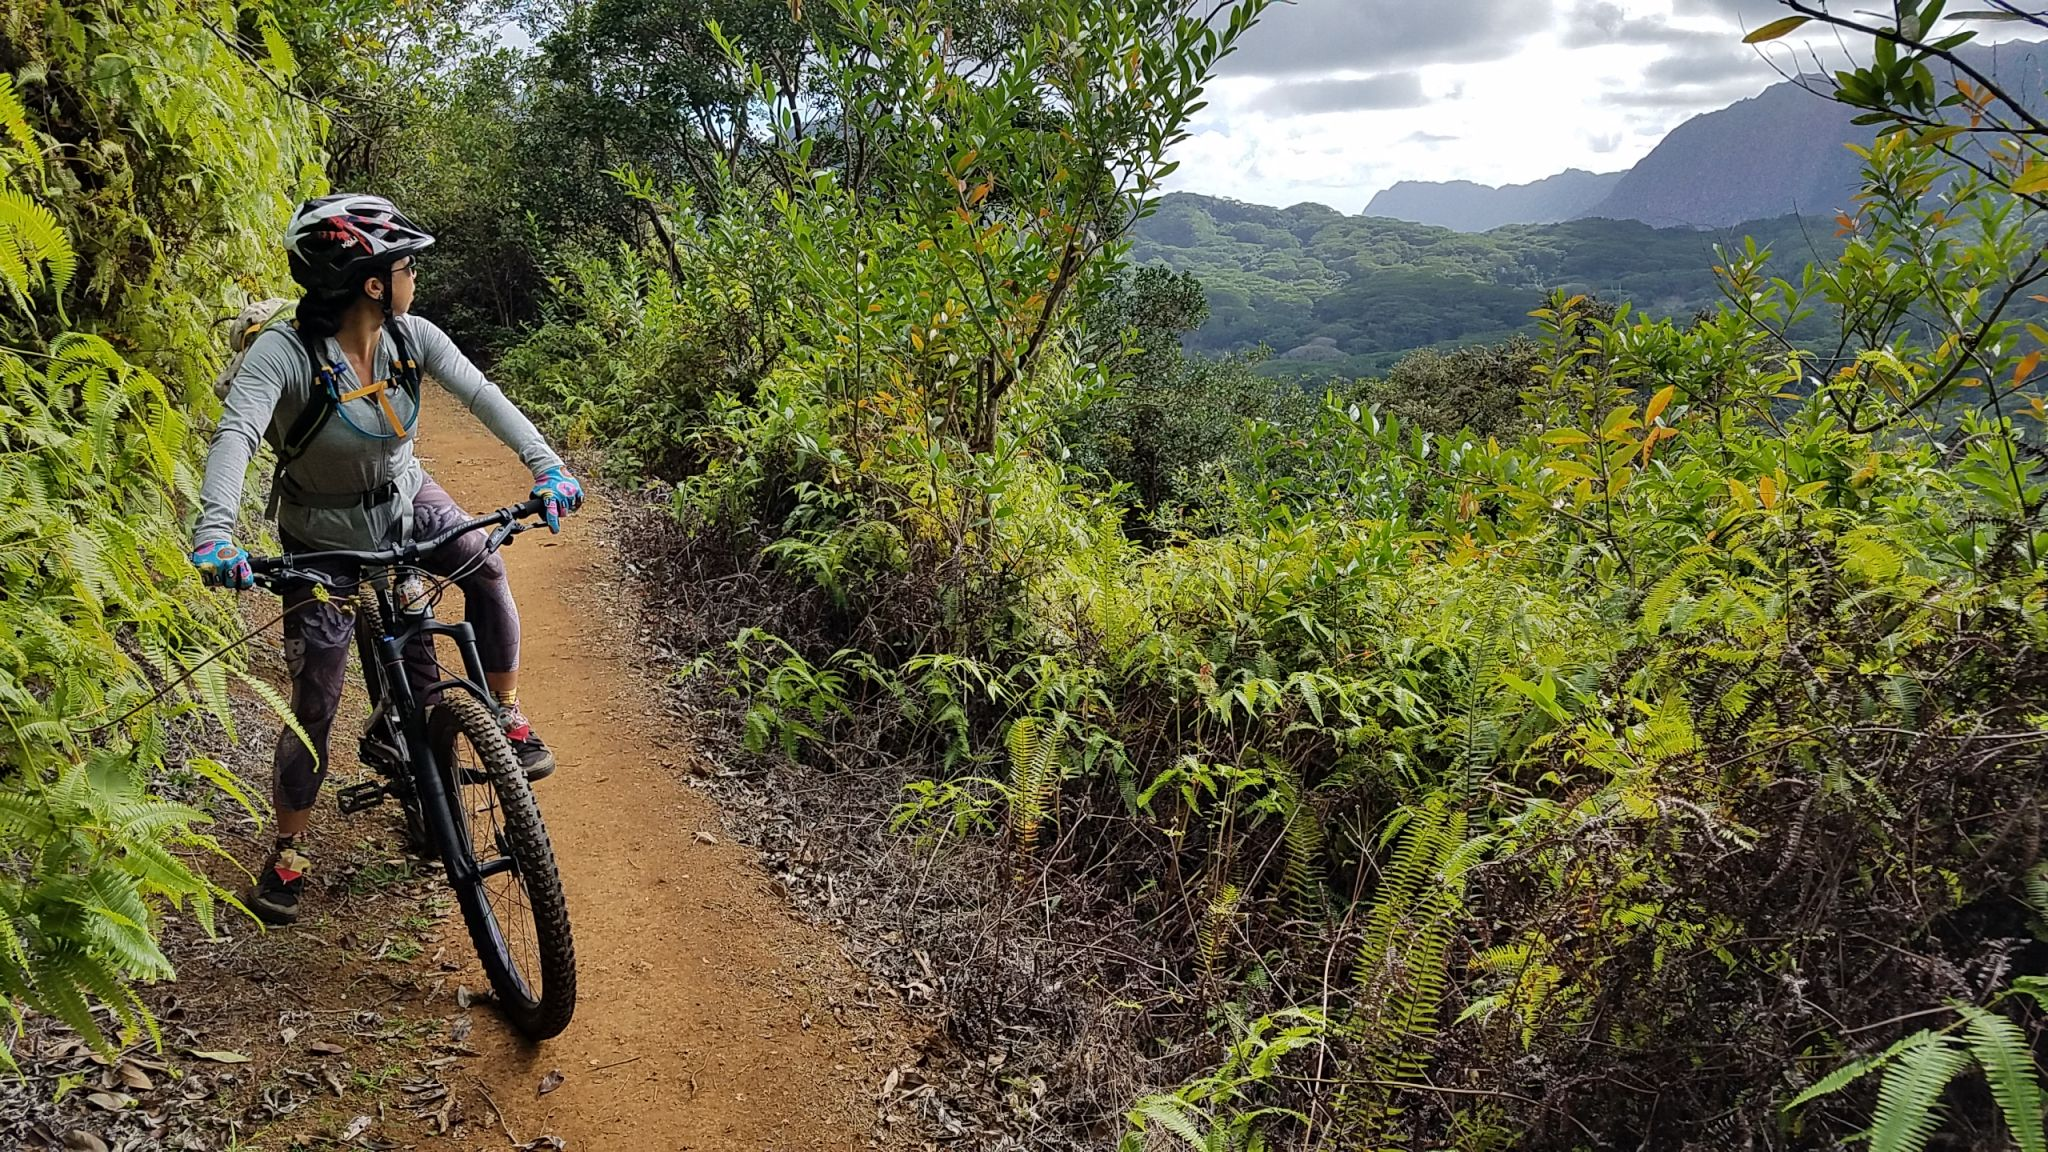 mountain bike dating site Mtb dating is the dating site for singles with a passion for mountain biking shred the mountain bike trails together find this pin and more on mountain bike dating by mtbdating.